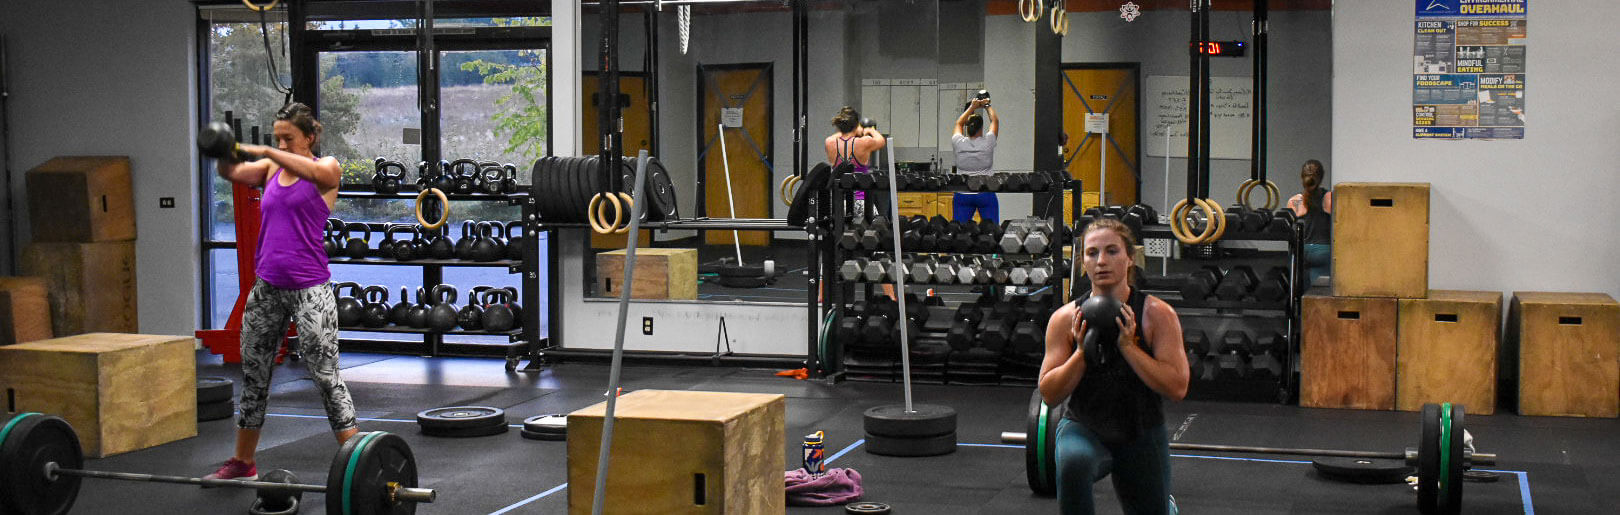 Two female members work out with kettlebells at CrossFit Alaska.